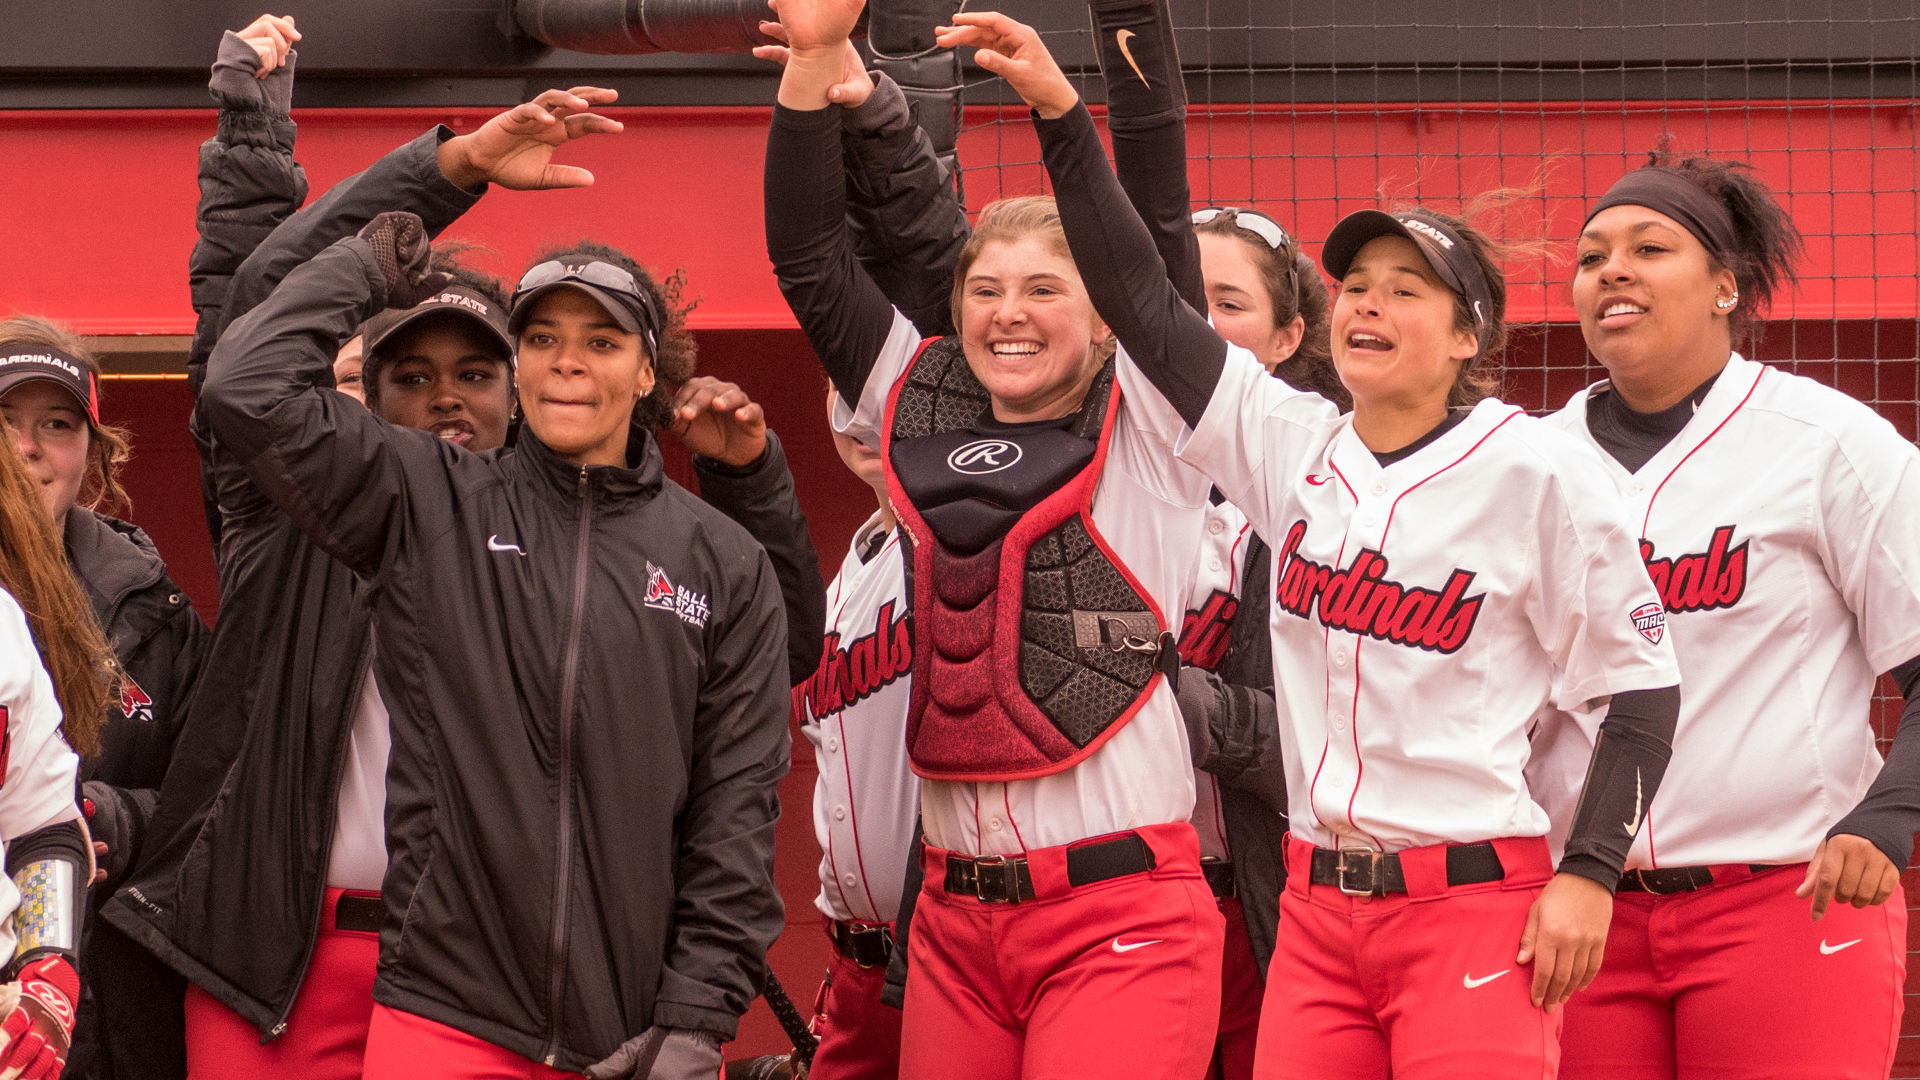 Softball Travels to NIU Wednesday, Hosts WMU This Weekend